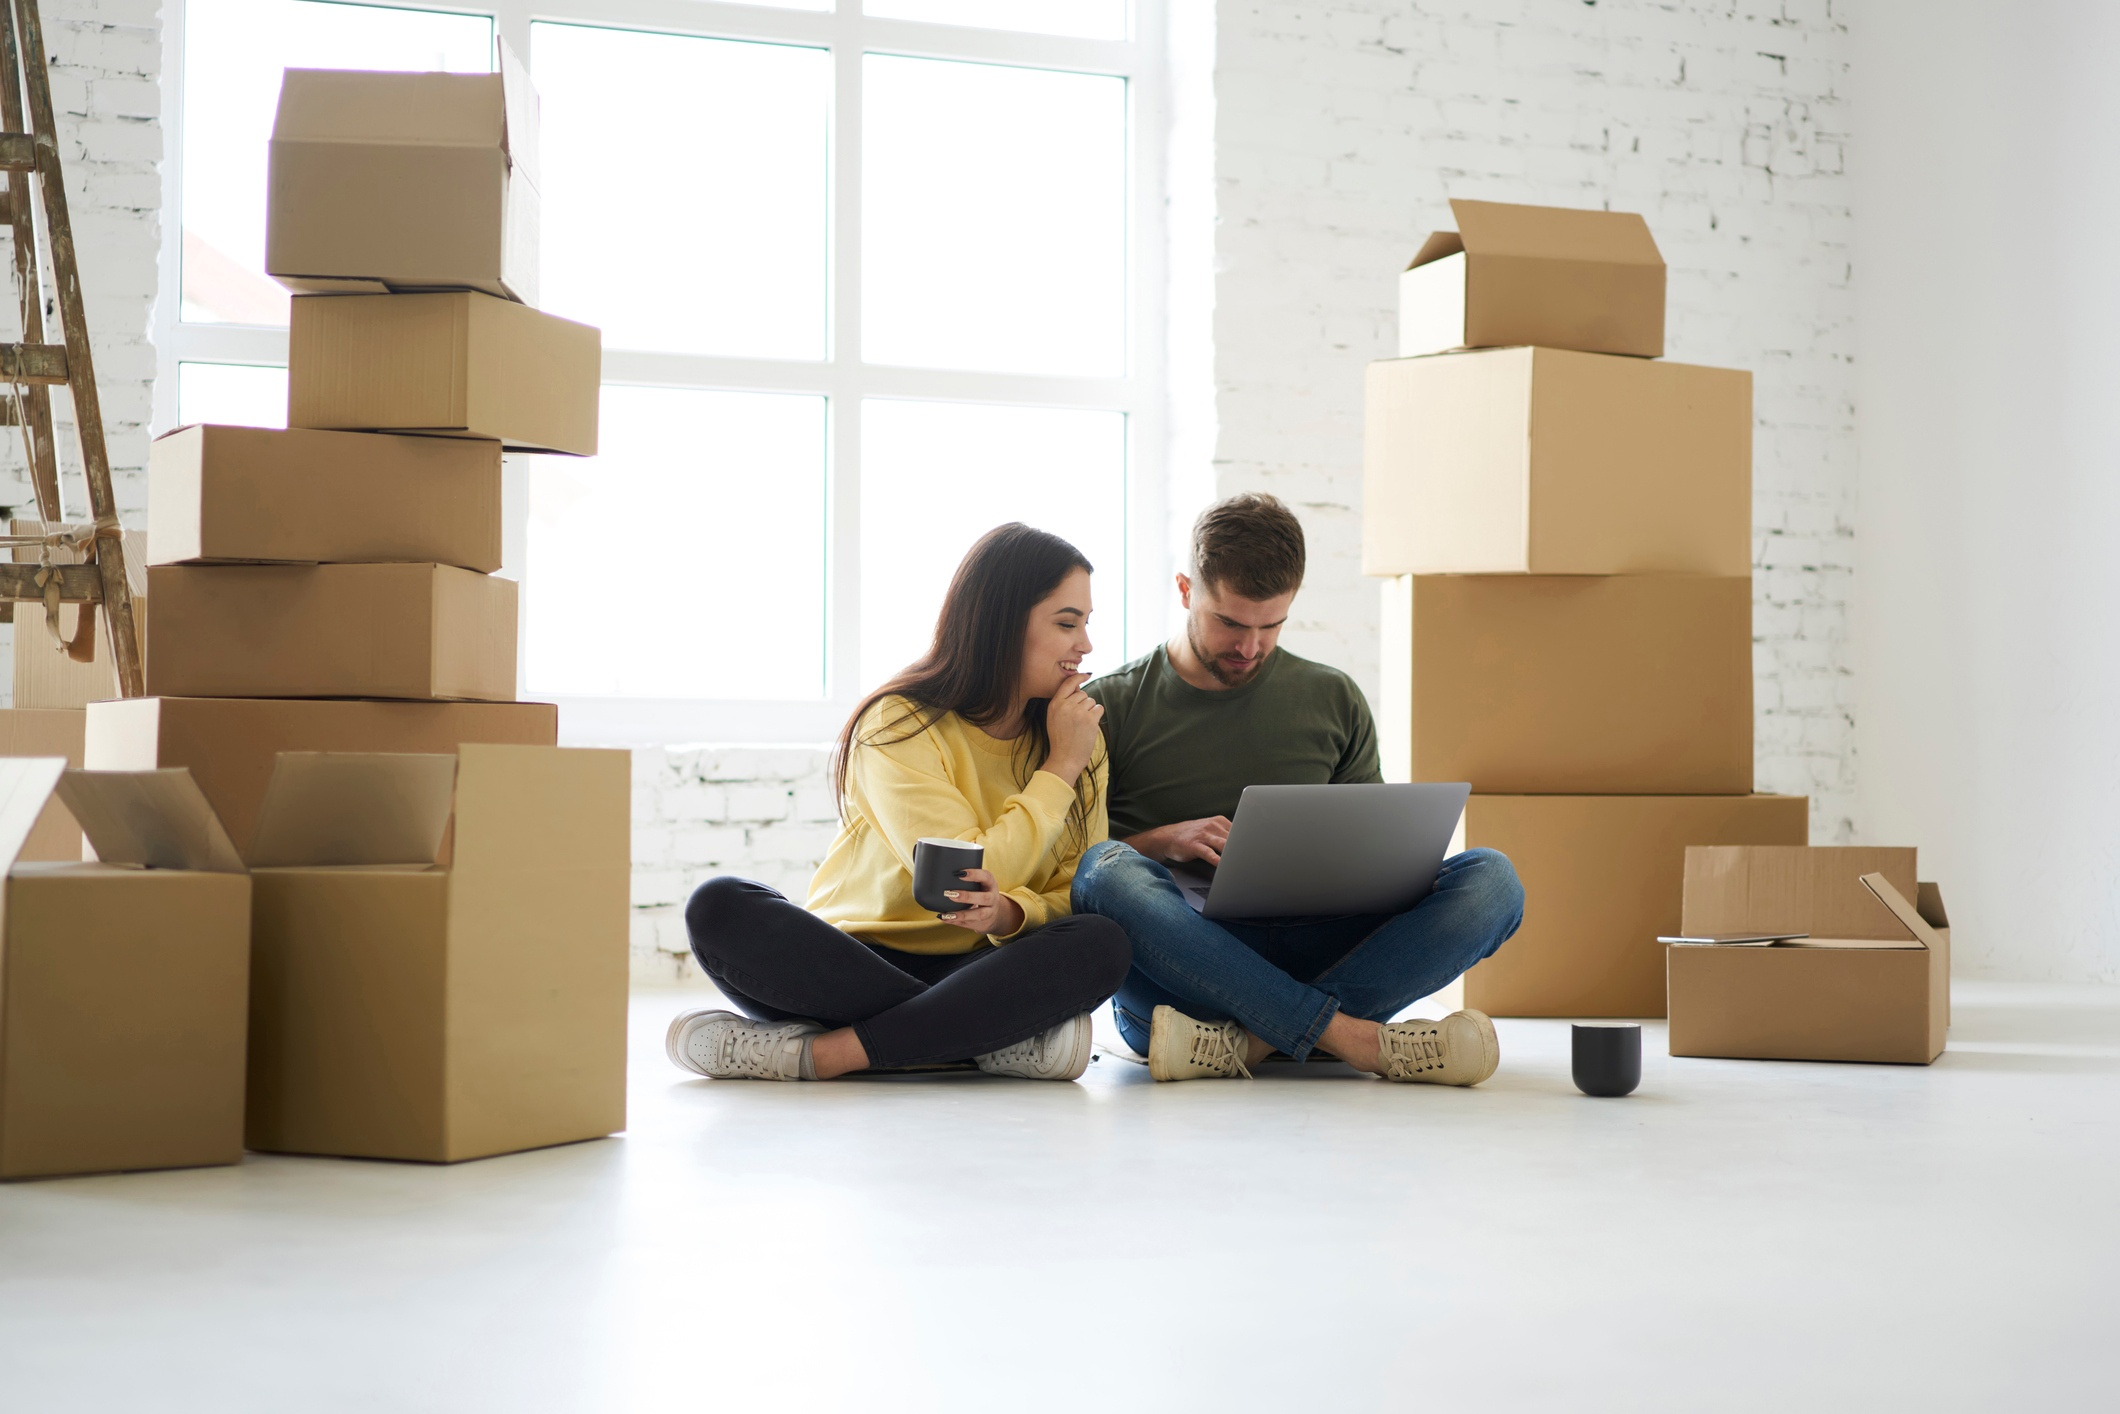 Young couple sitting on the floor of an empty apartment surrounded by cardboard boxes.